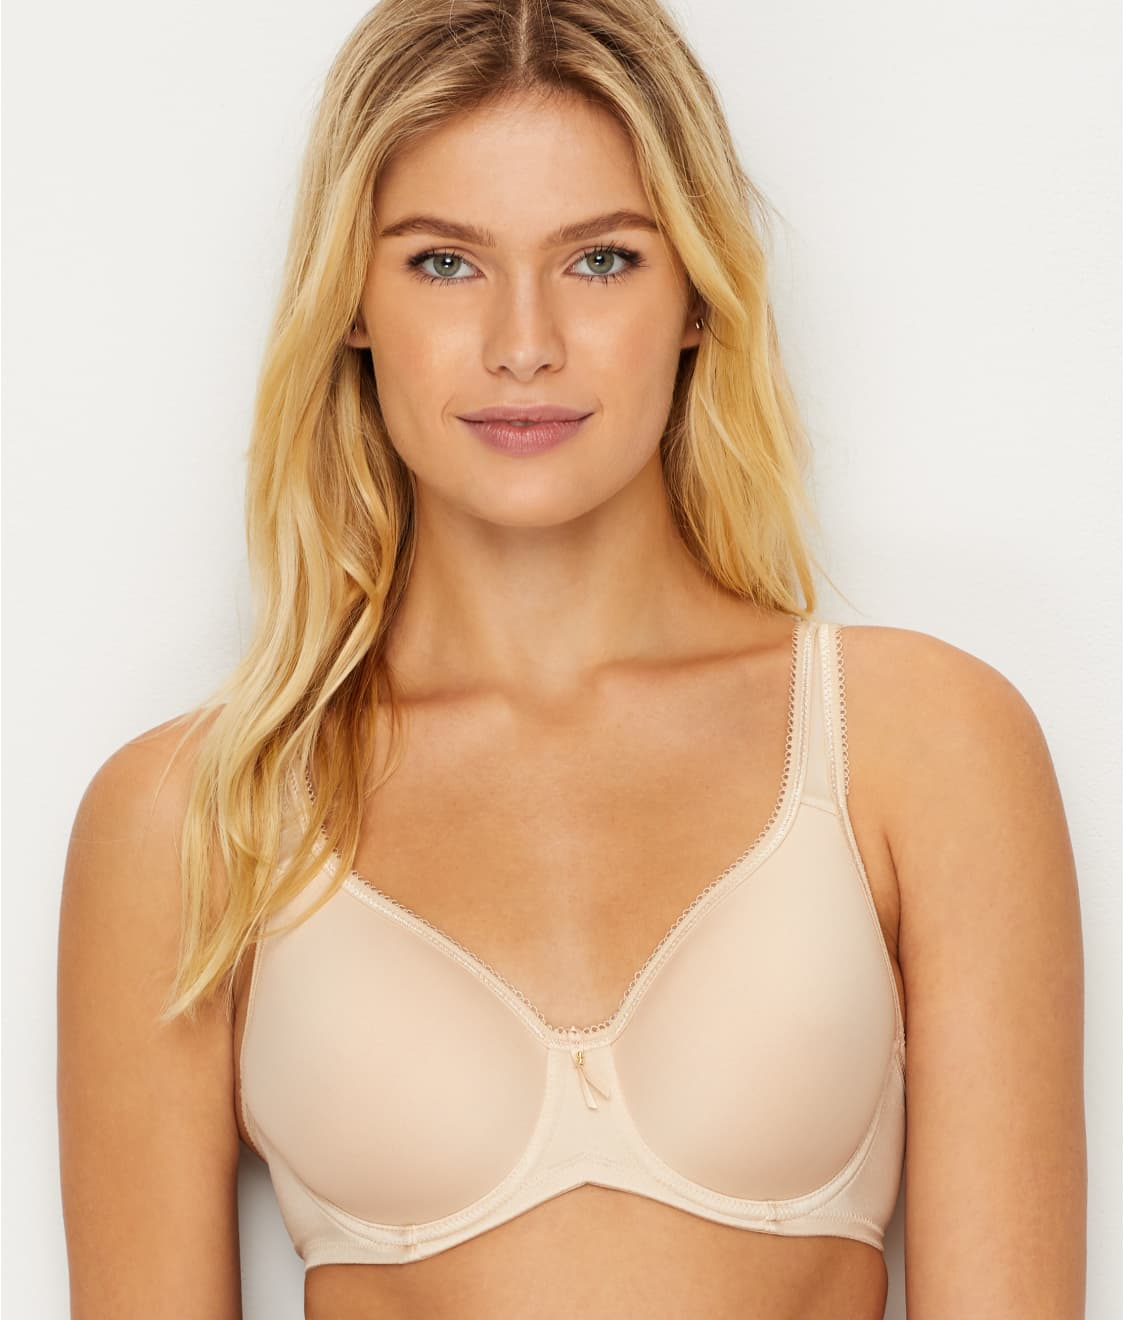 a20b610def See Basic Beauty T-Shirt Bra in Sand